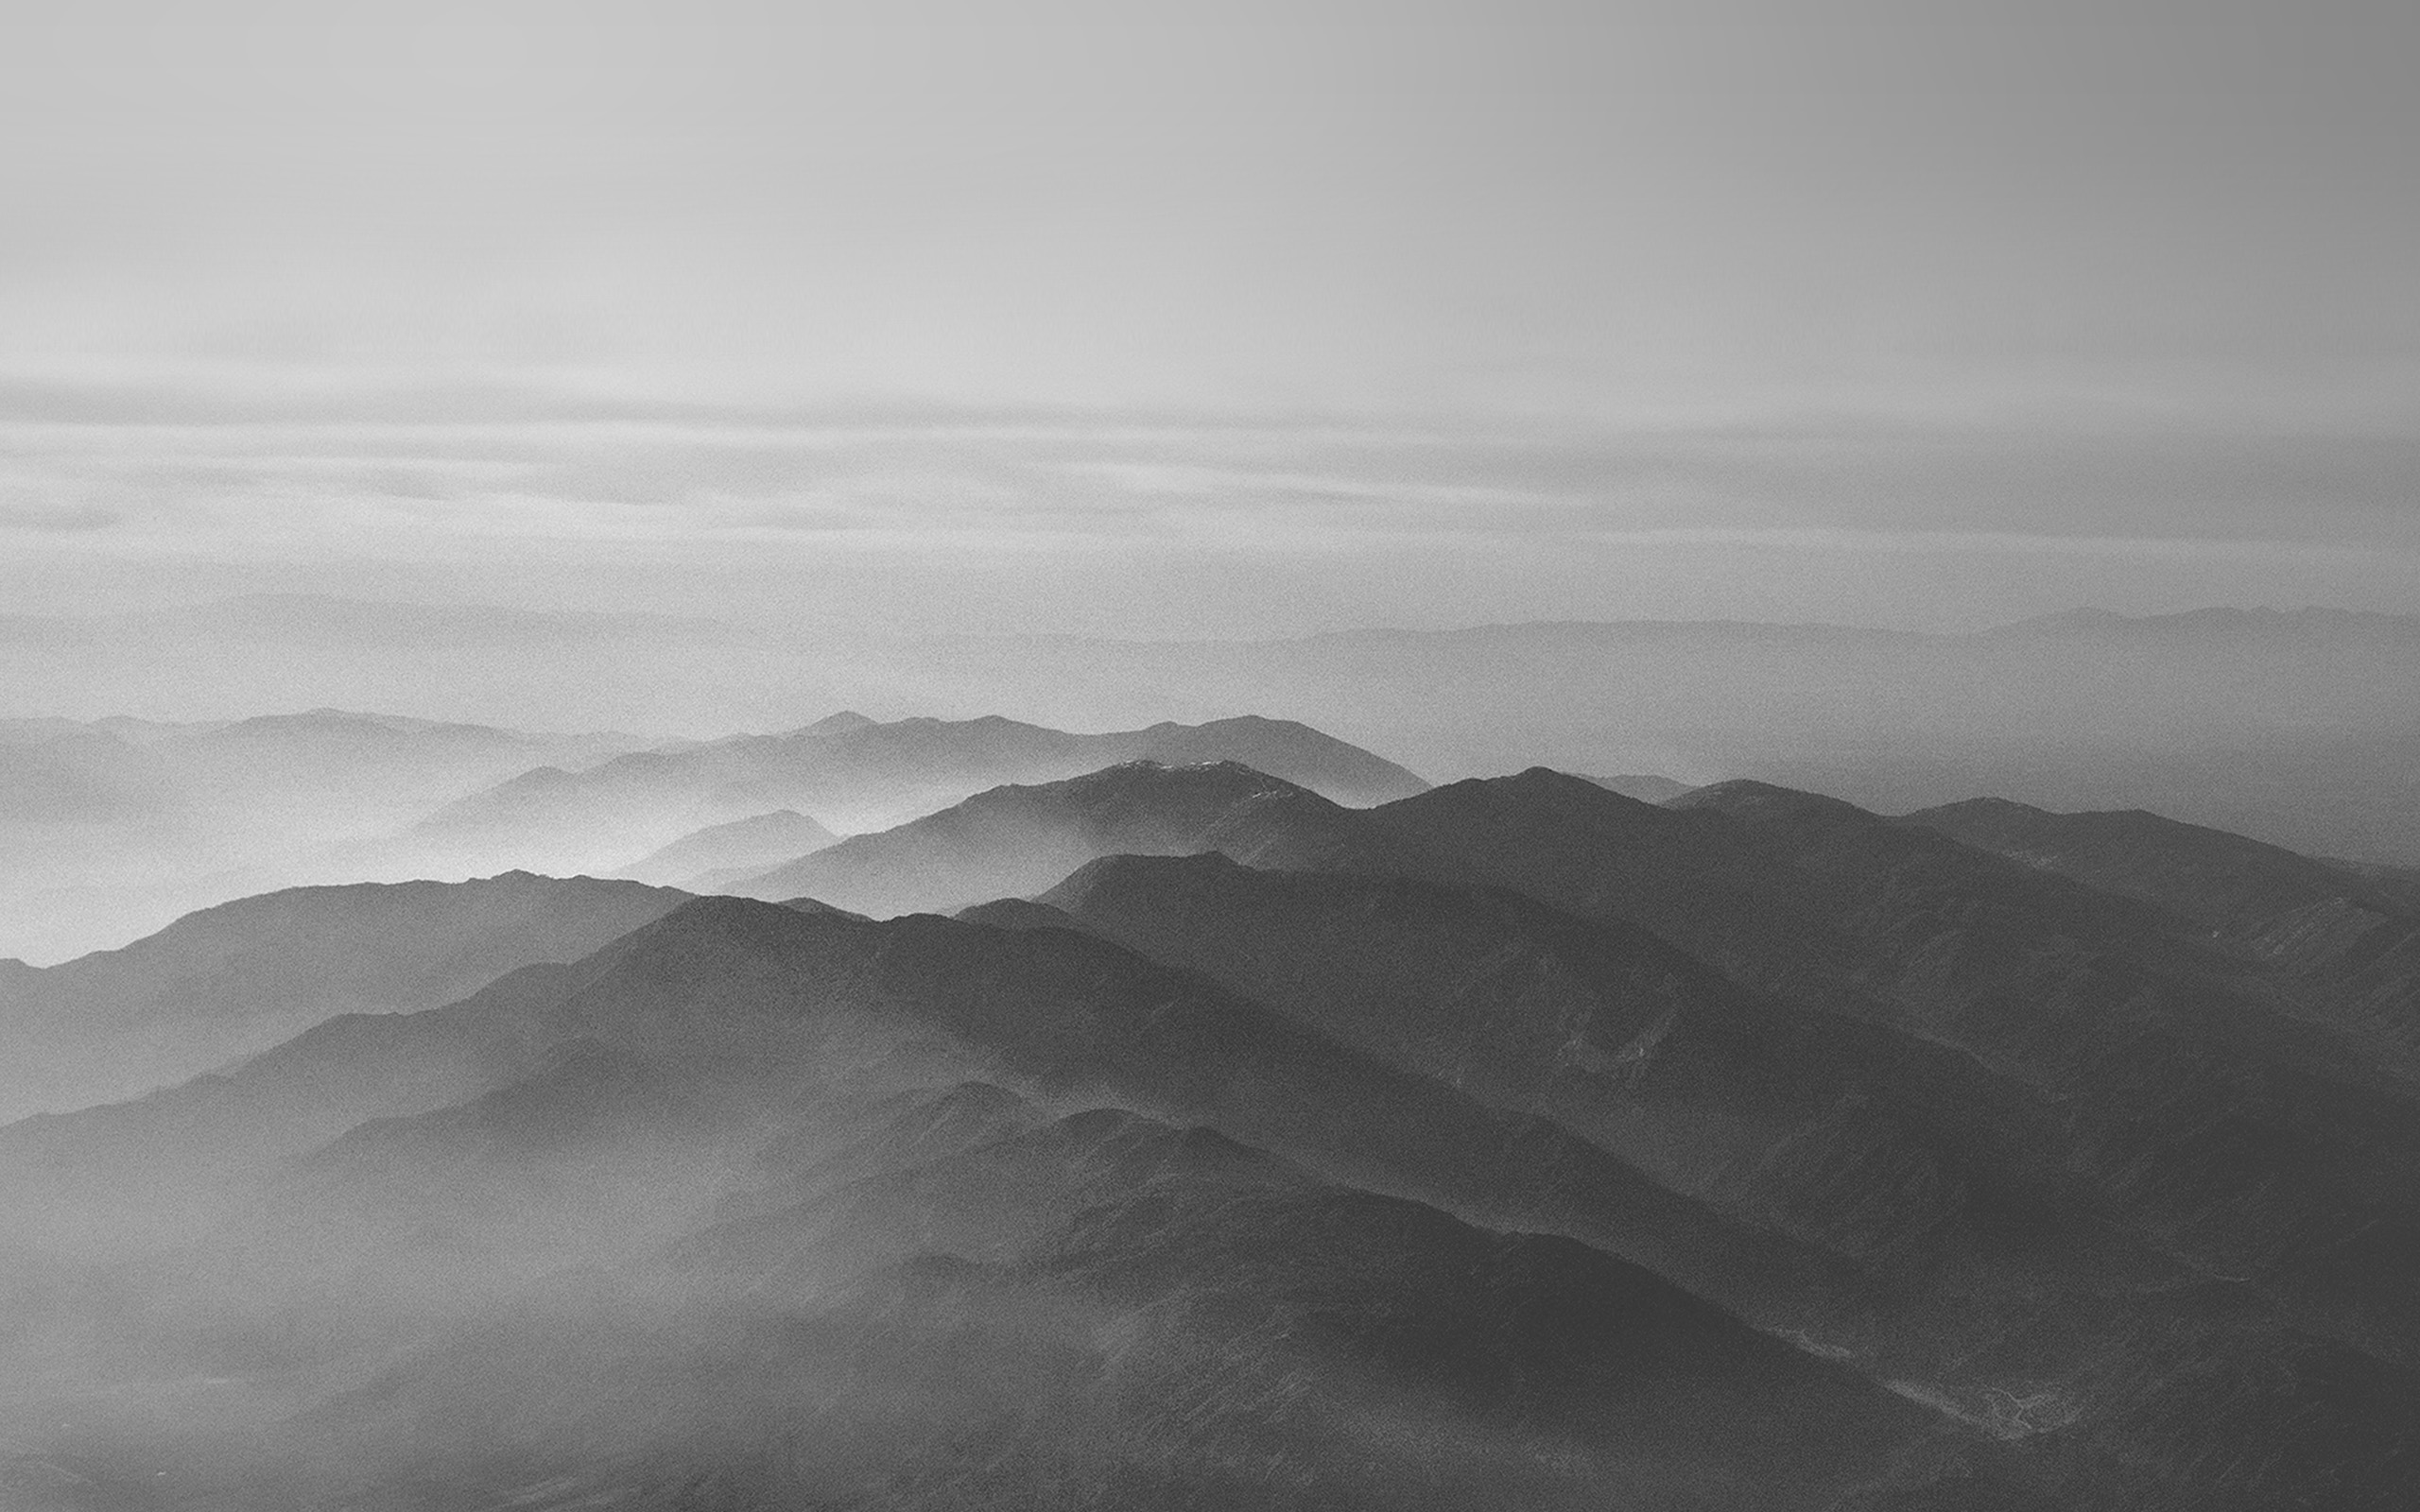 mu40-mountain-fog-nature-dark-bw-gray-sky-view - Papers.co